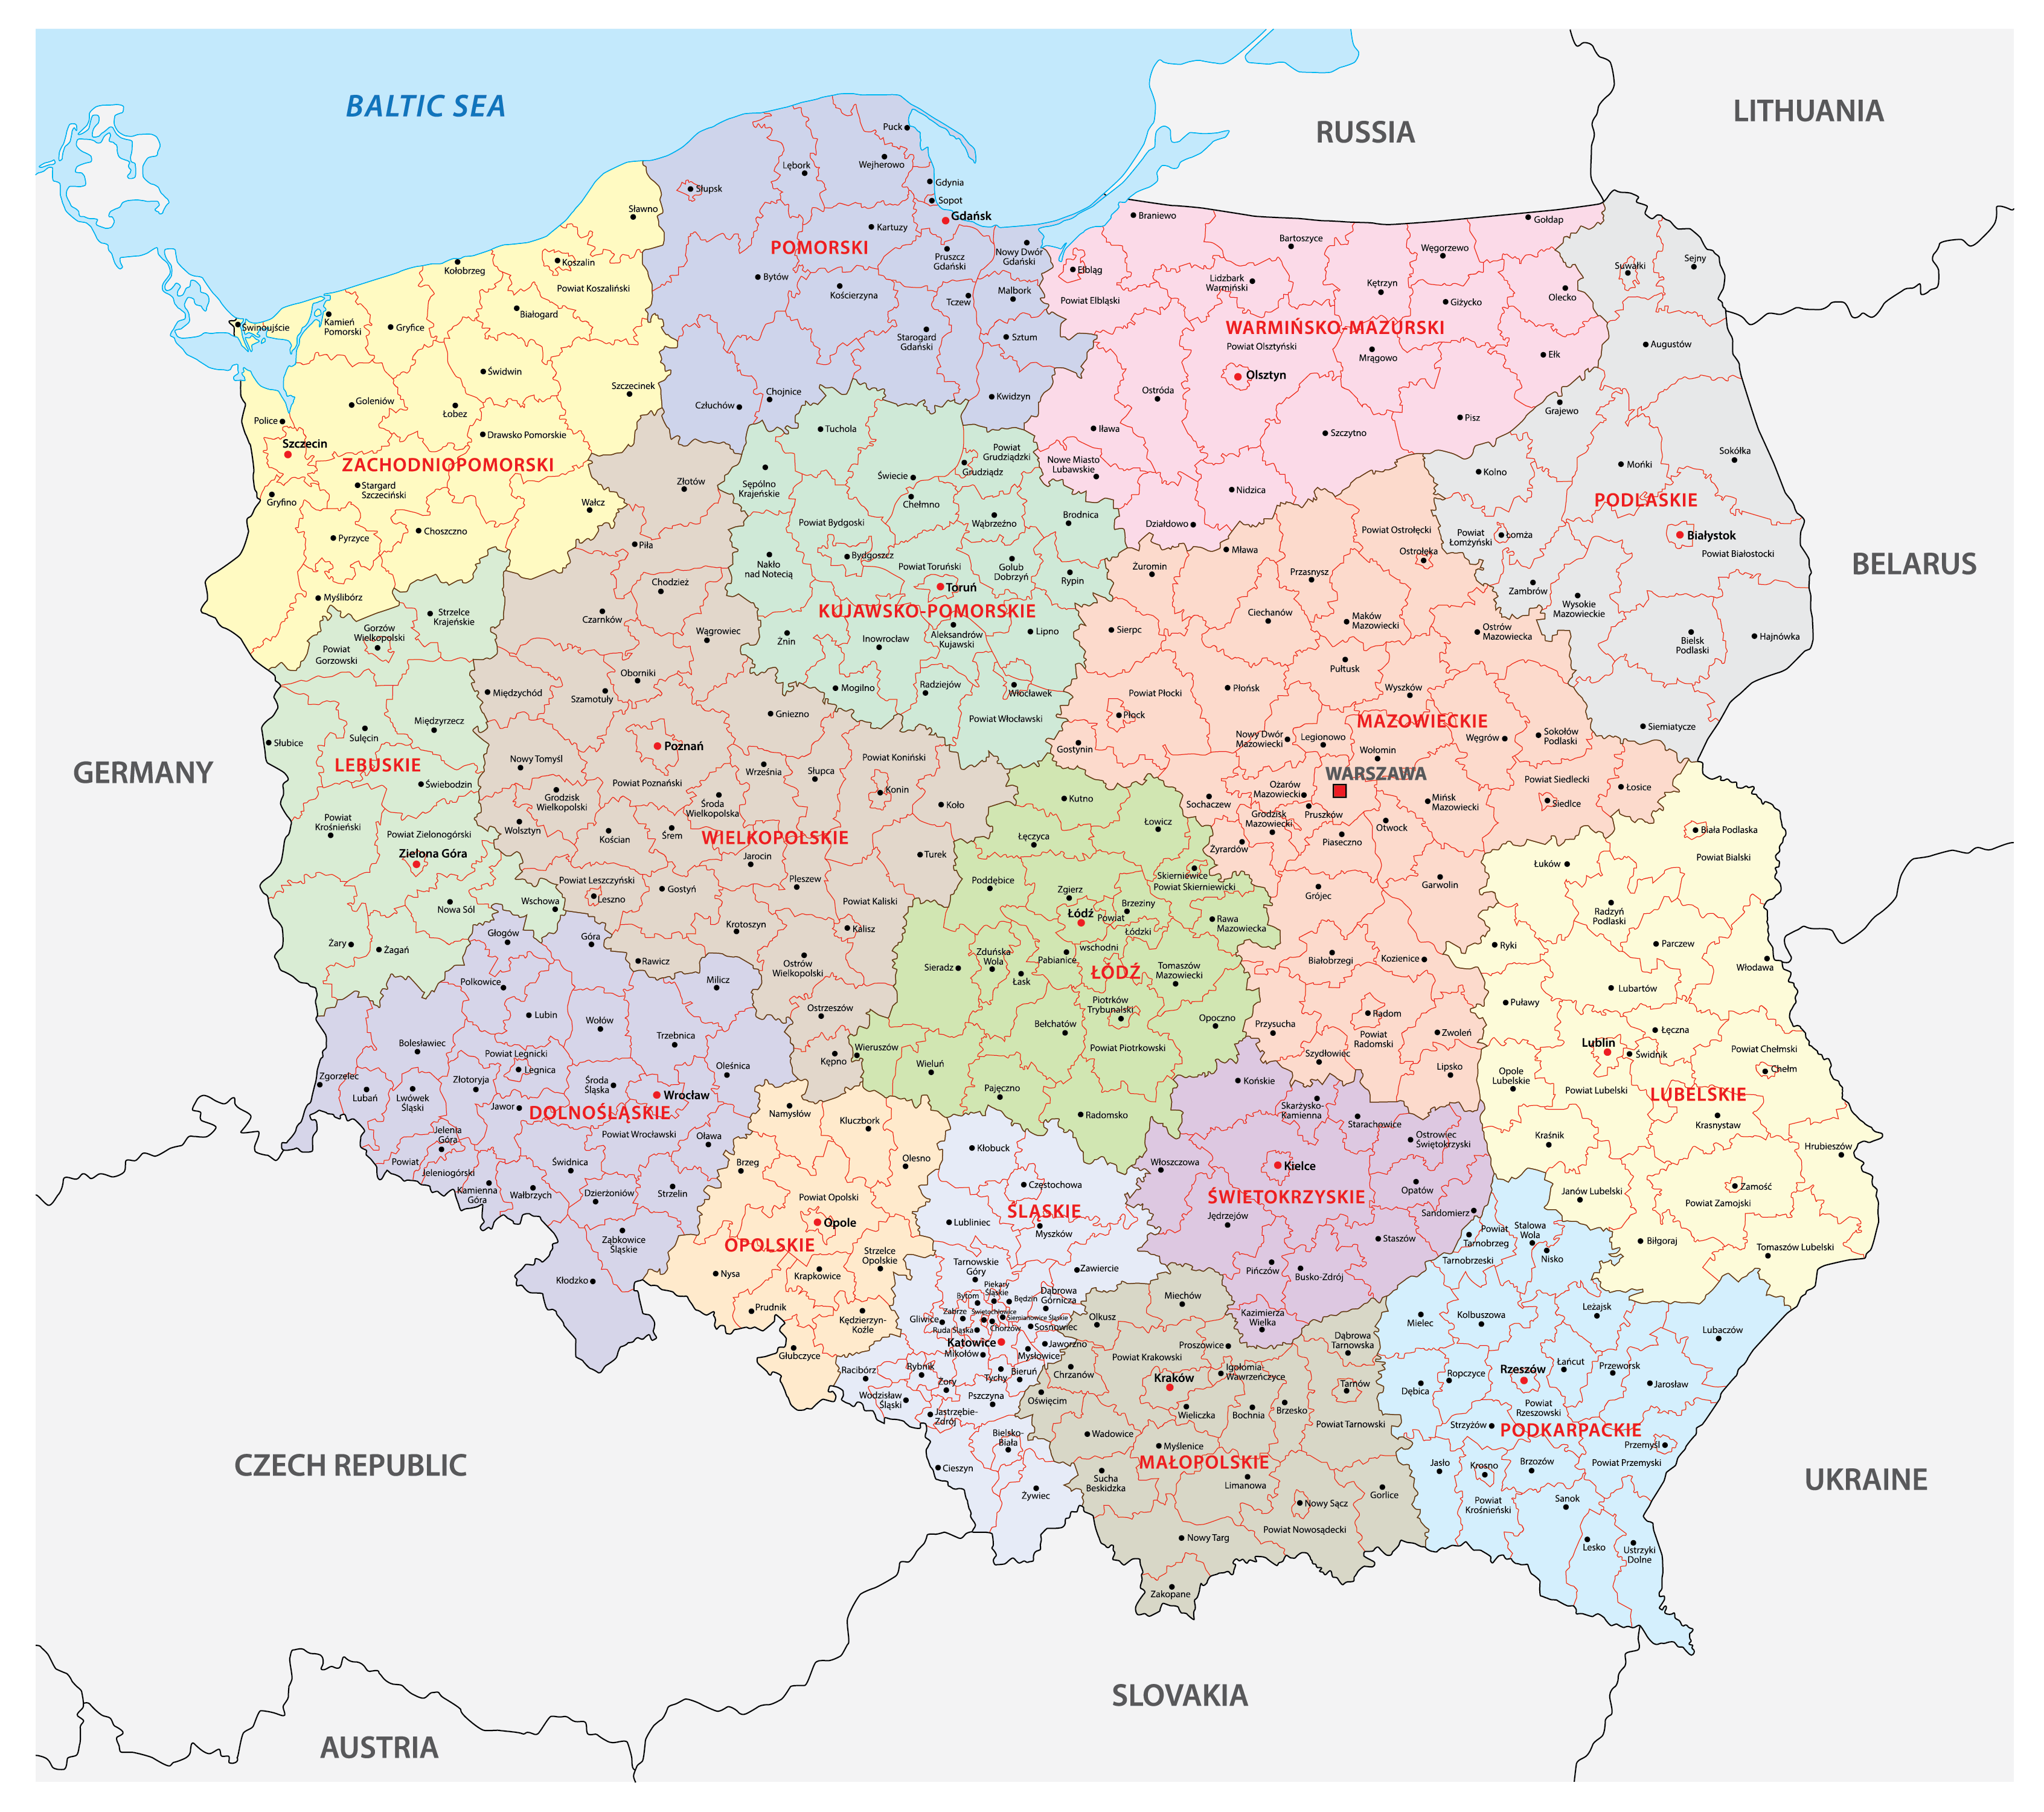 Political Map of Poland showing its 16 voivodeships and the capital city Warsaw.